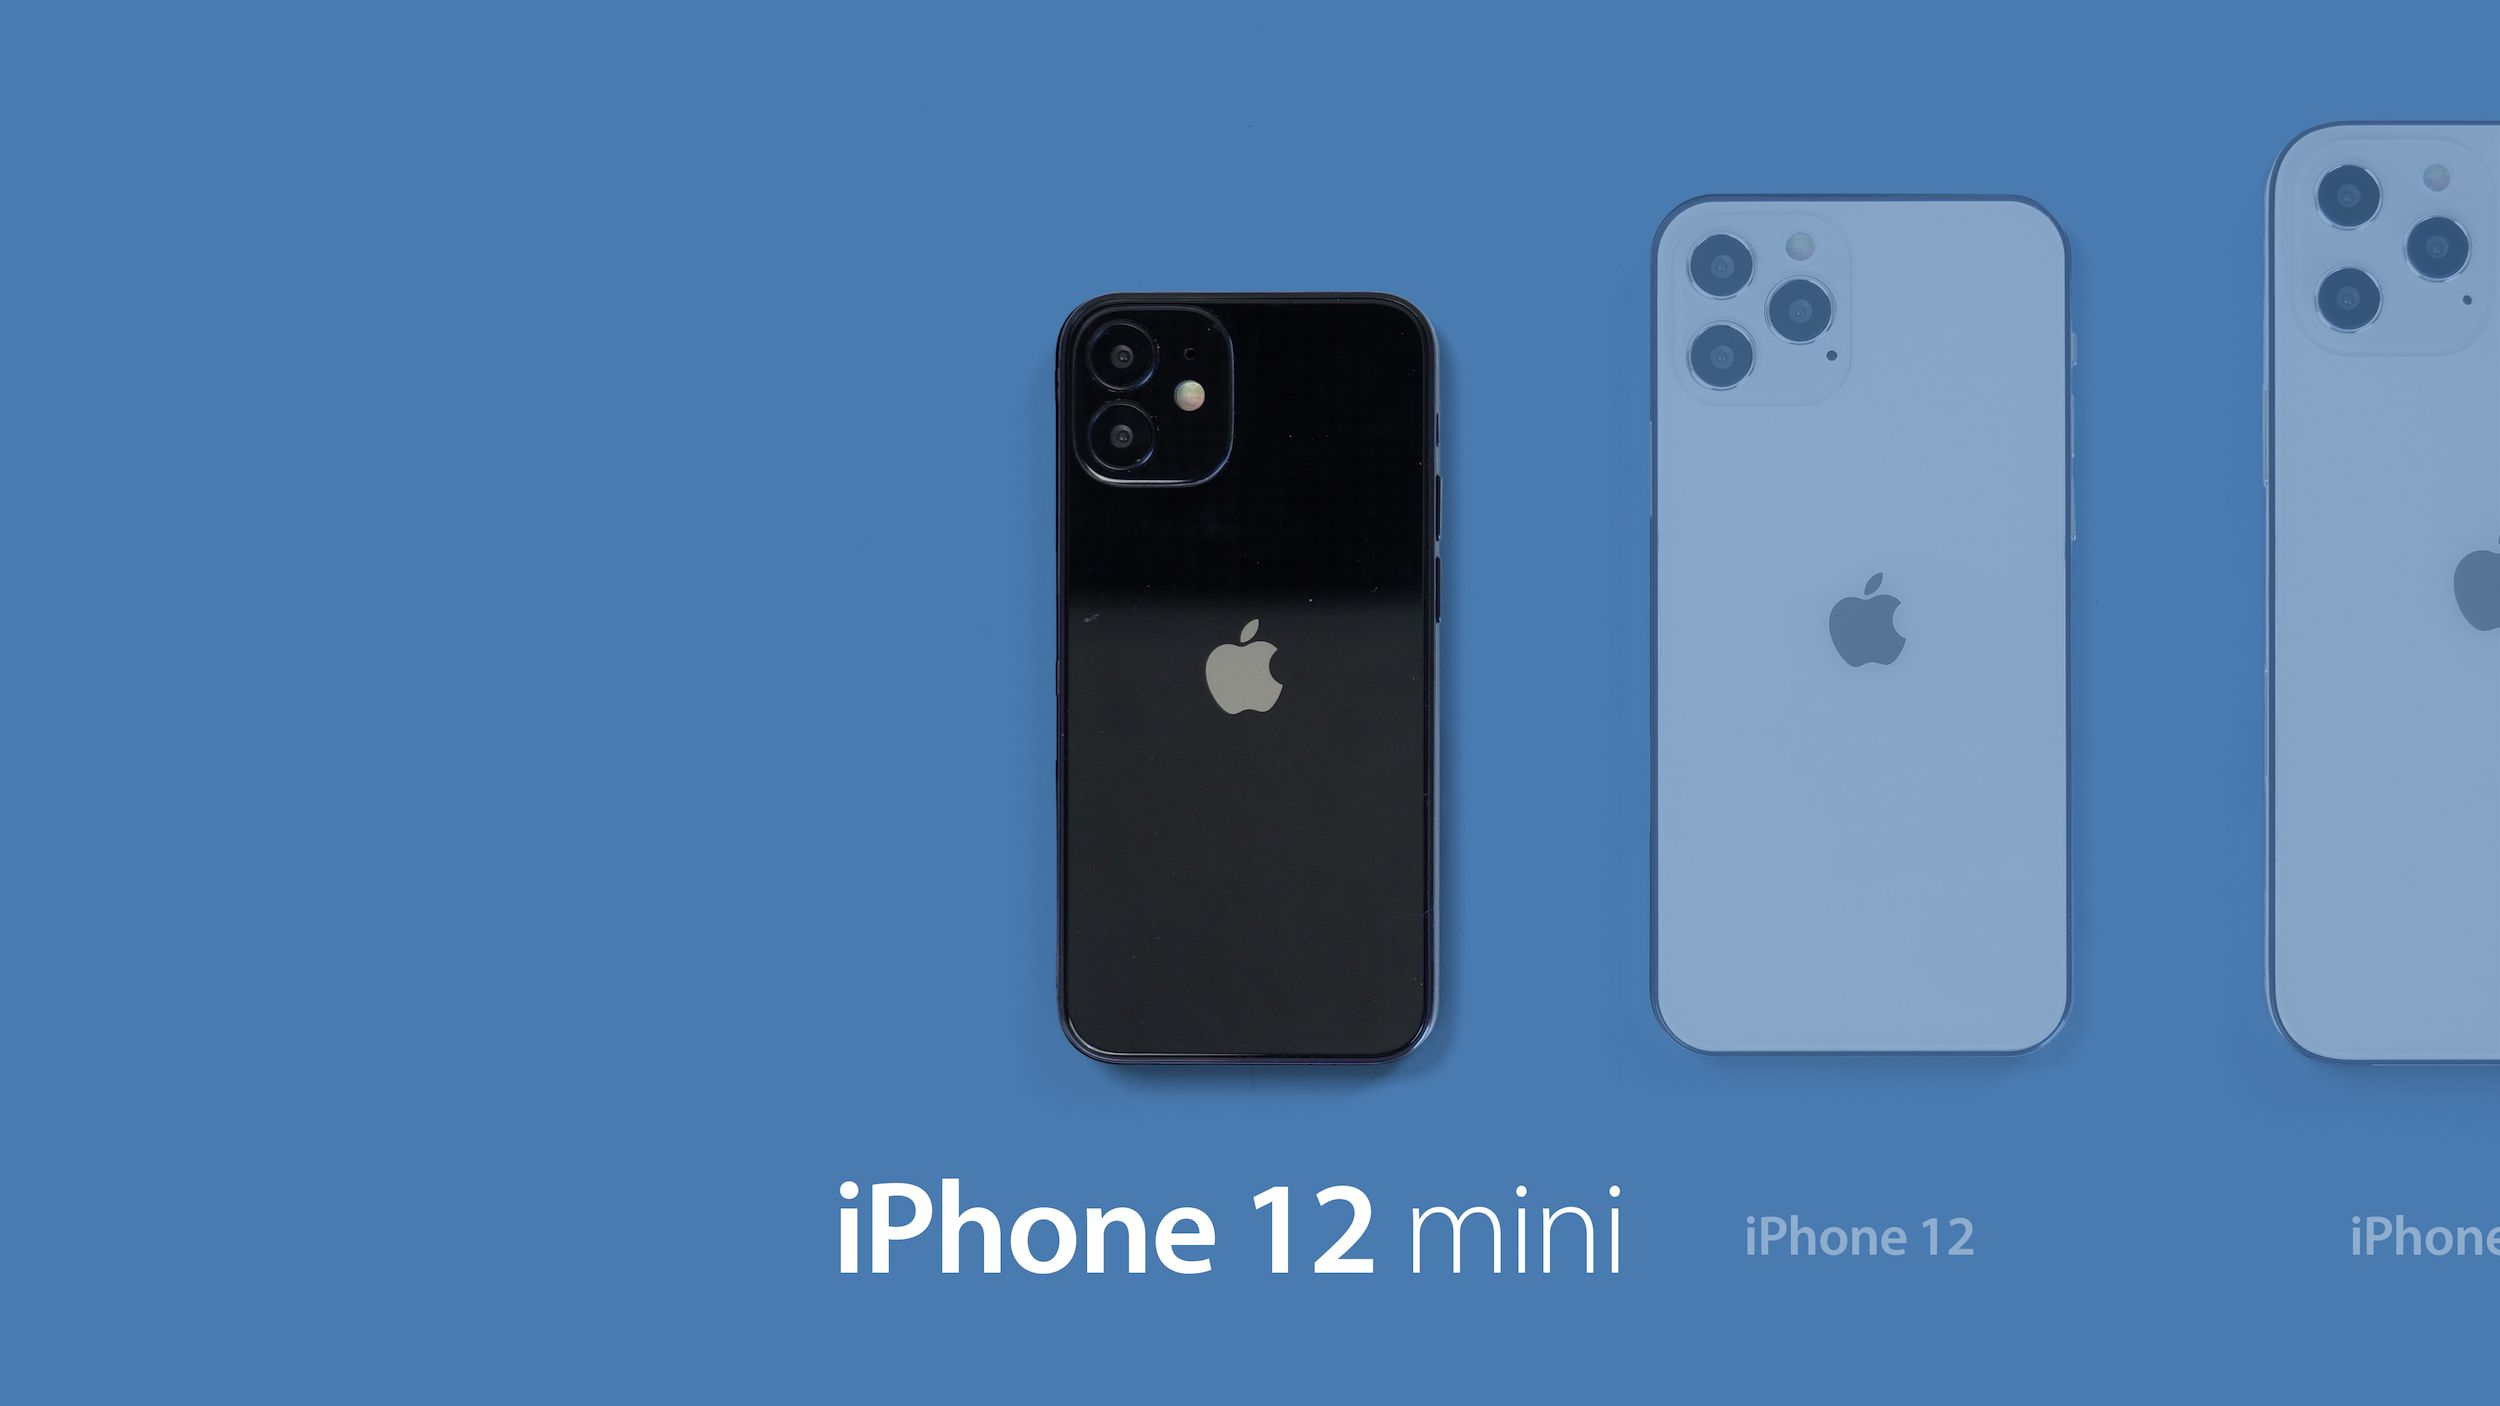 iPhone 12 Lineup Rumored to Be Named 'iPhone 12 mini,' 'iPhone 12,' 'iPhone  12 Pro,' and 'iPhone 12 Pro Max' - MacRumors